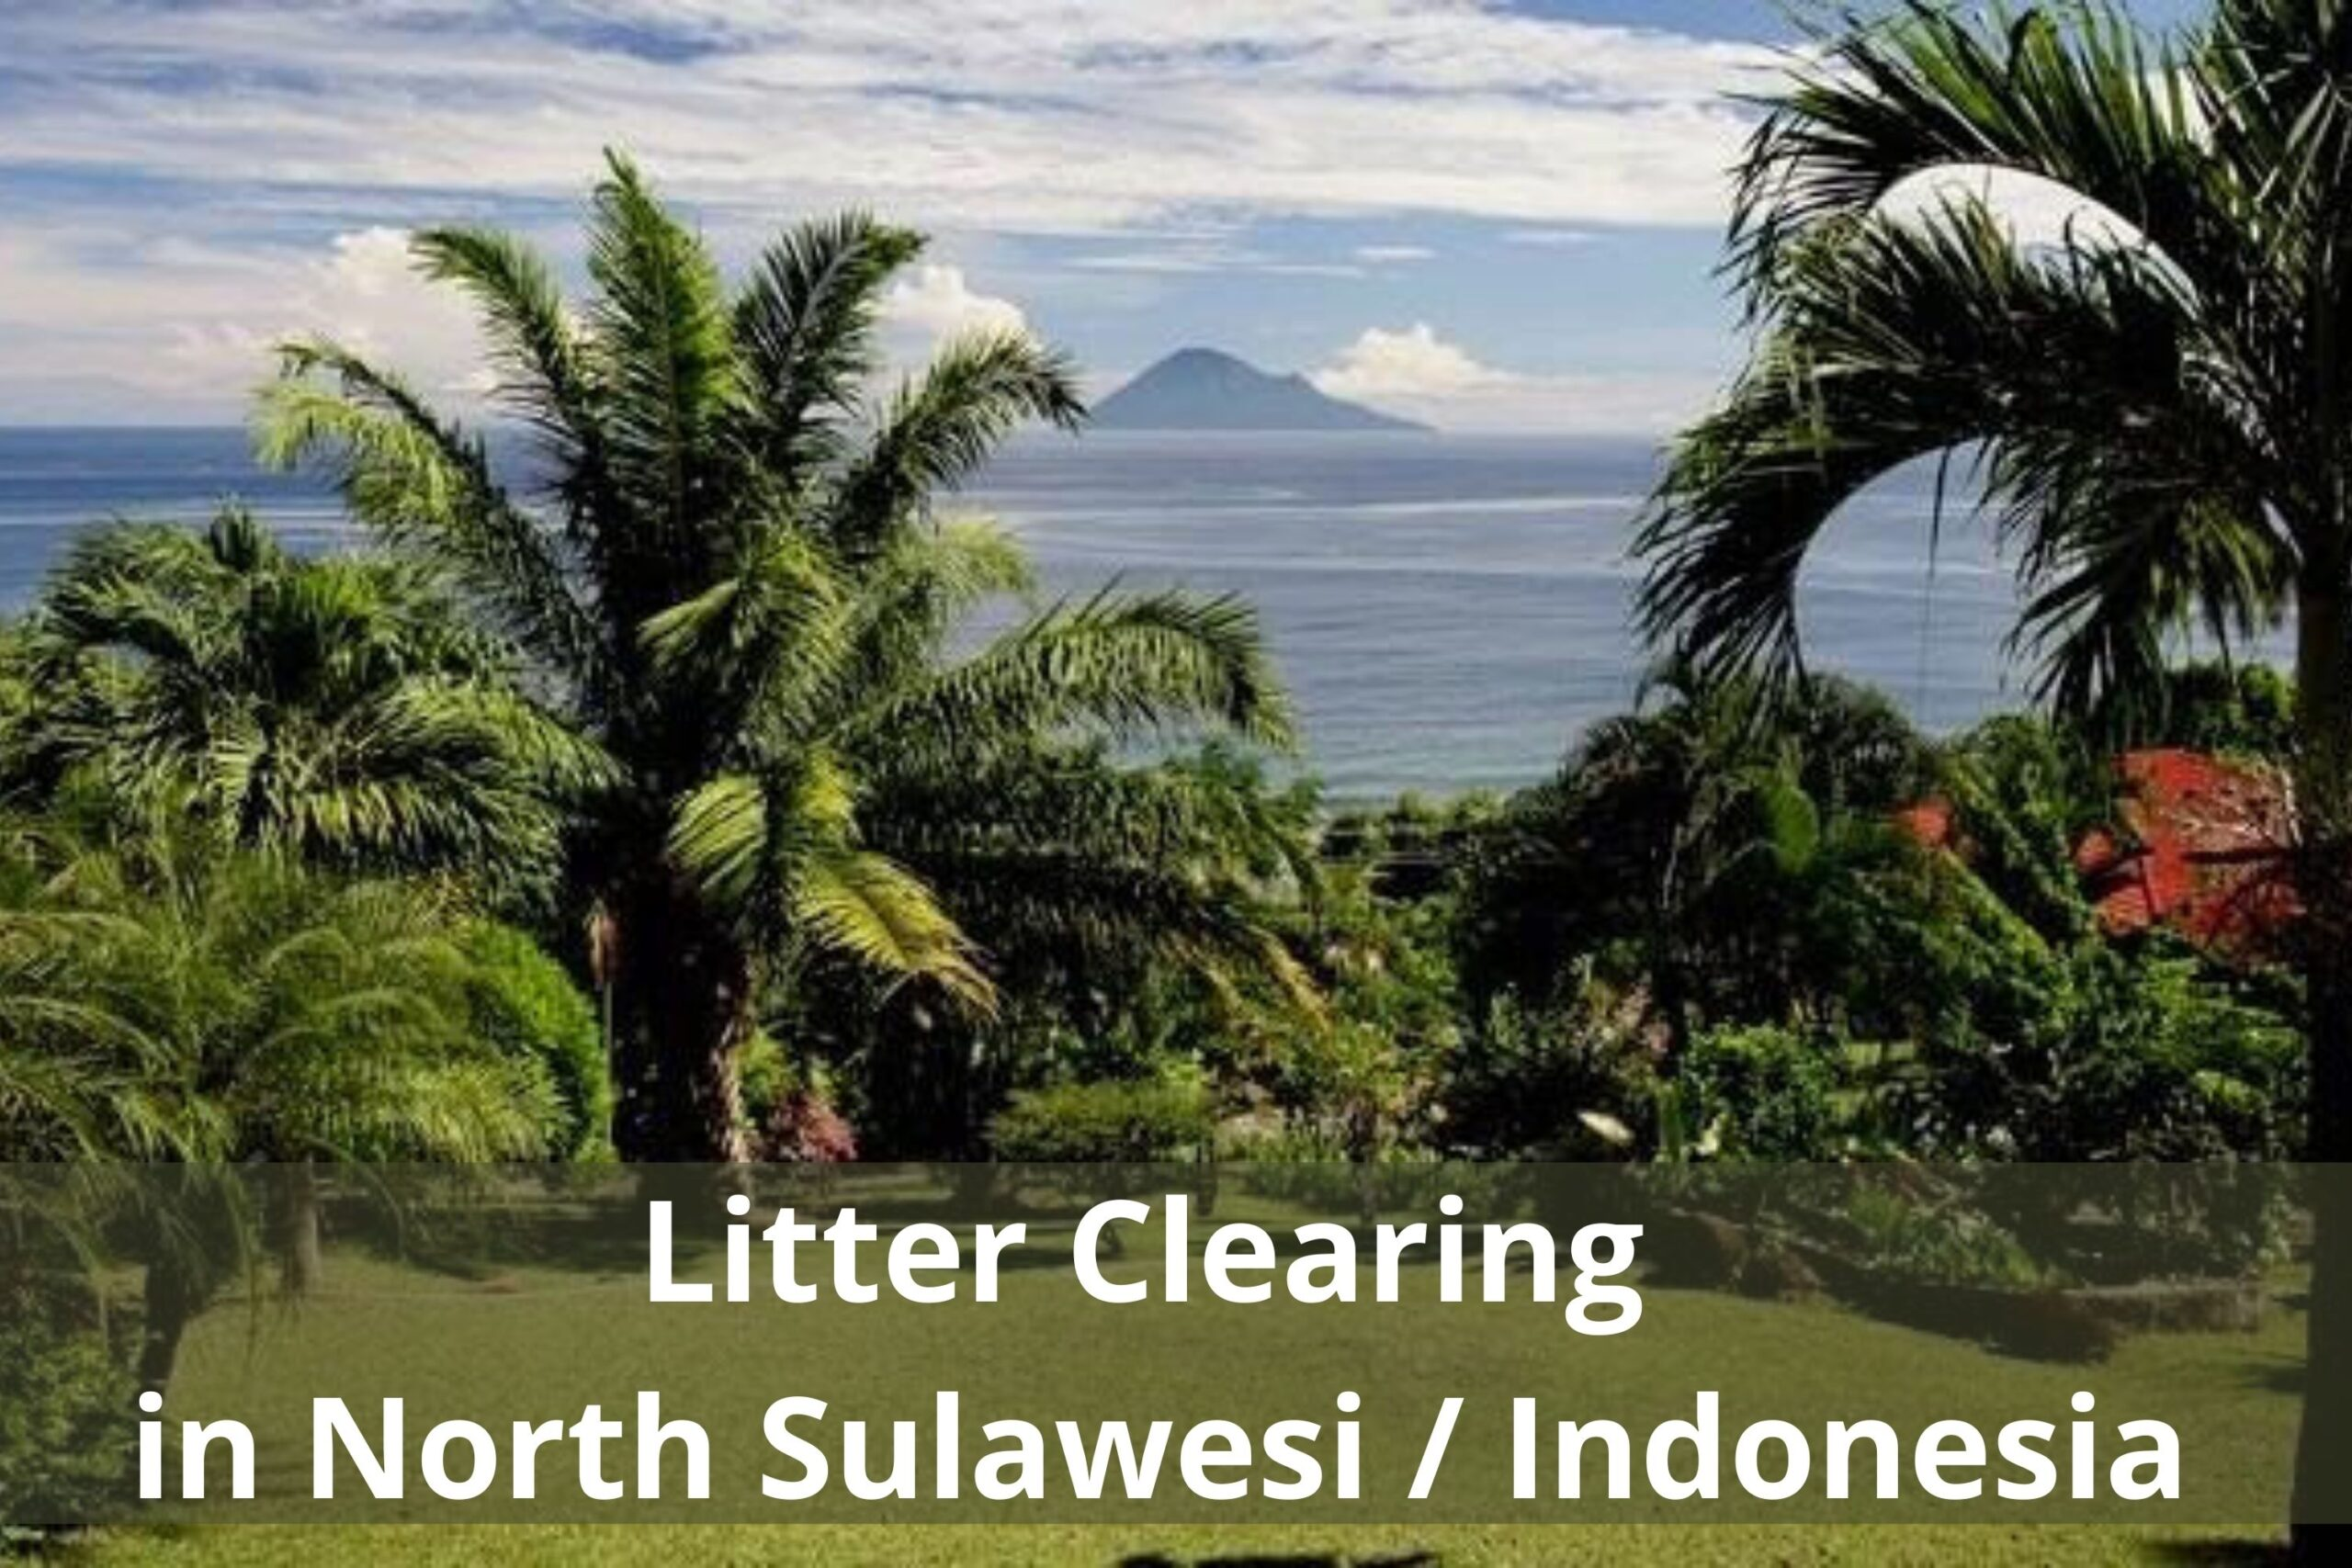 Litter Clearing in North Sulawesi